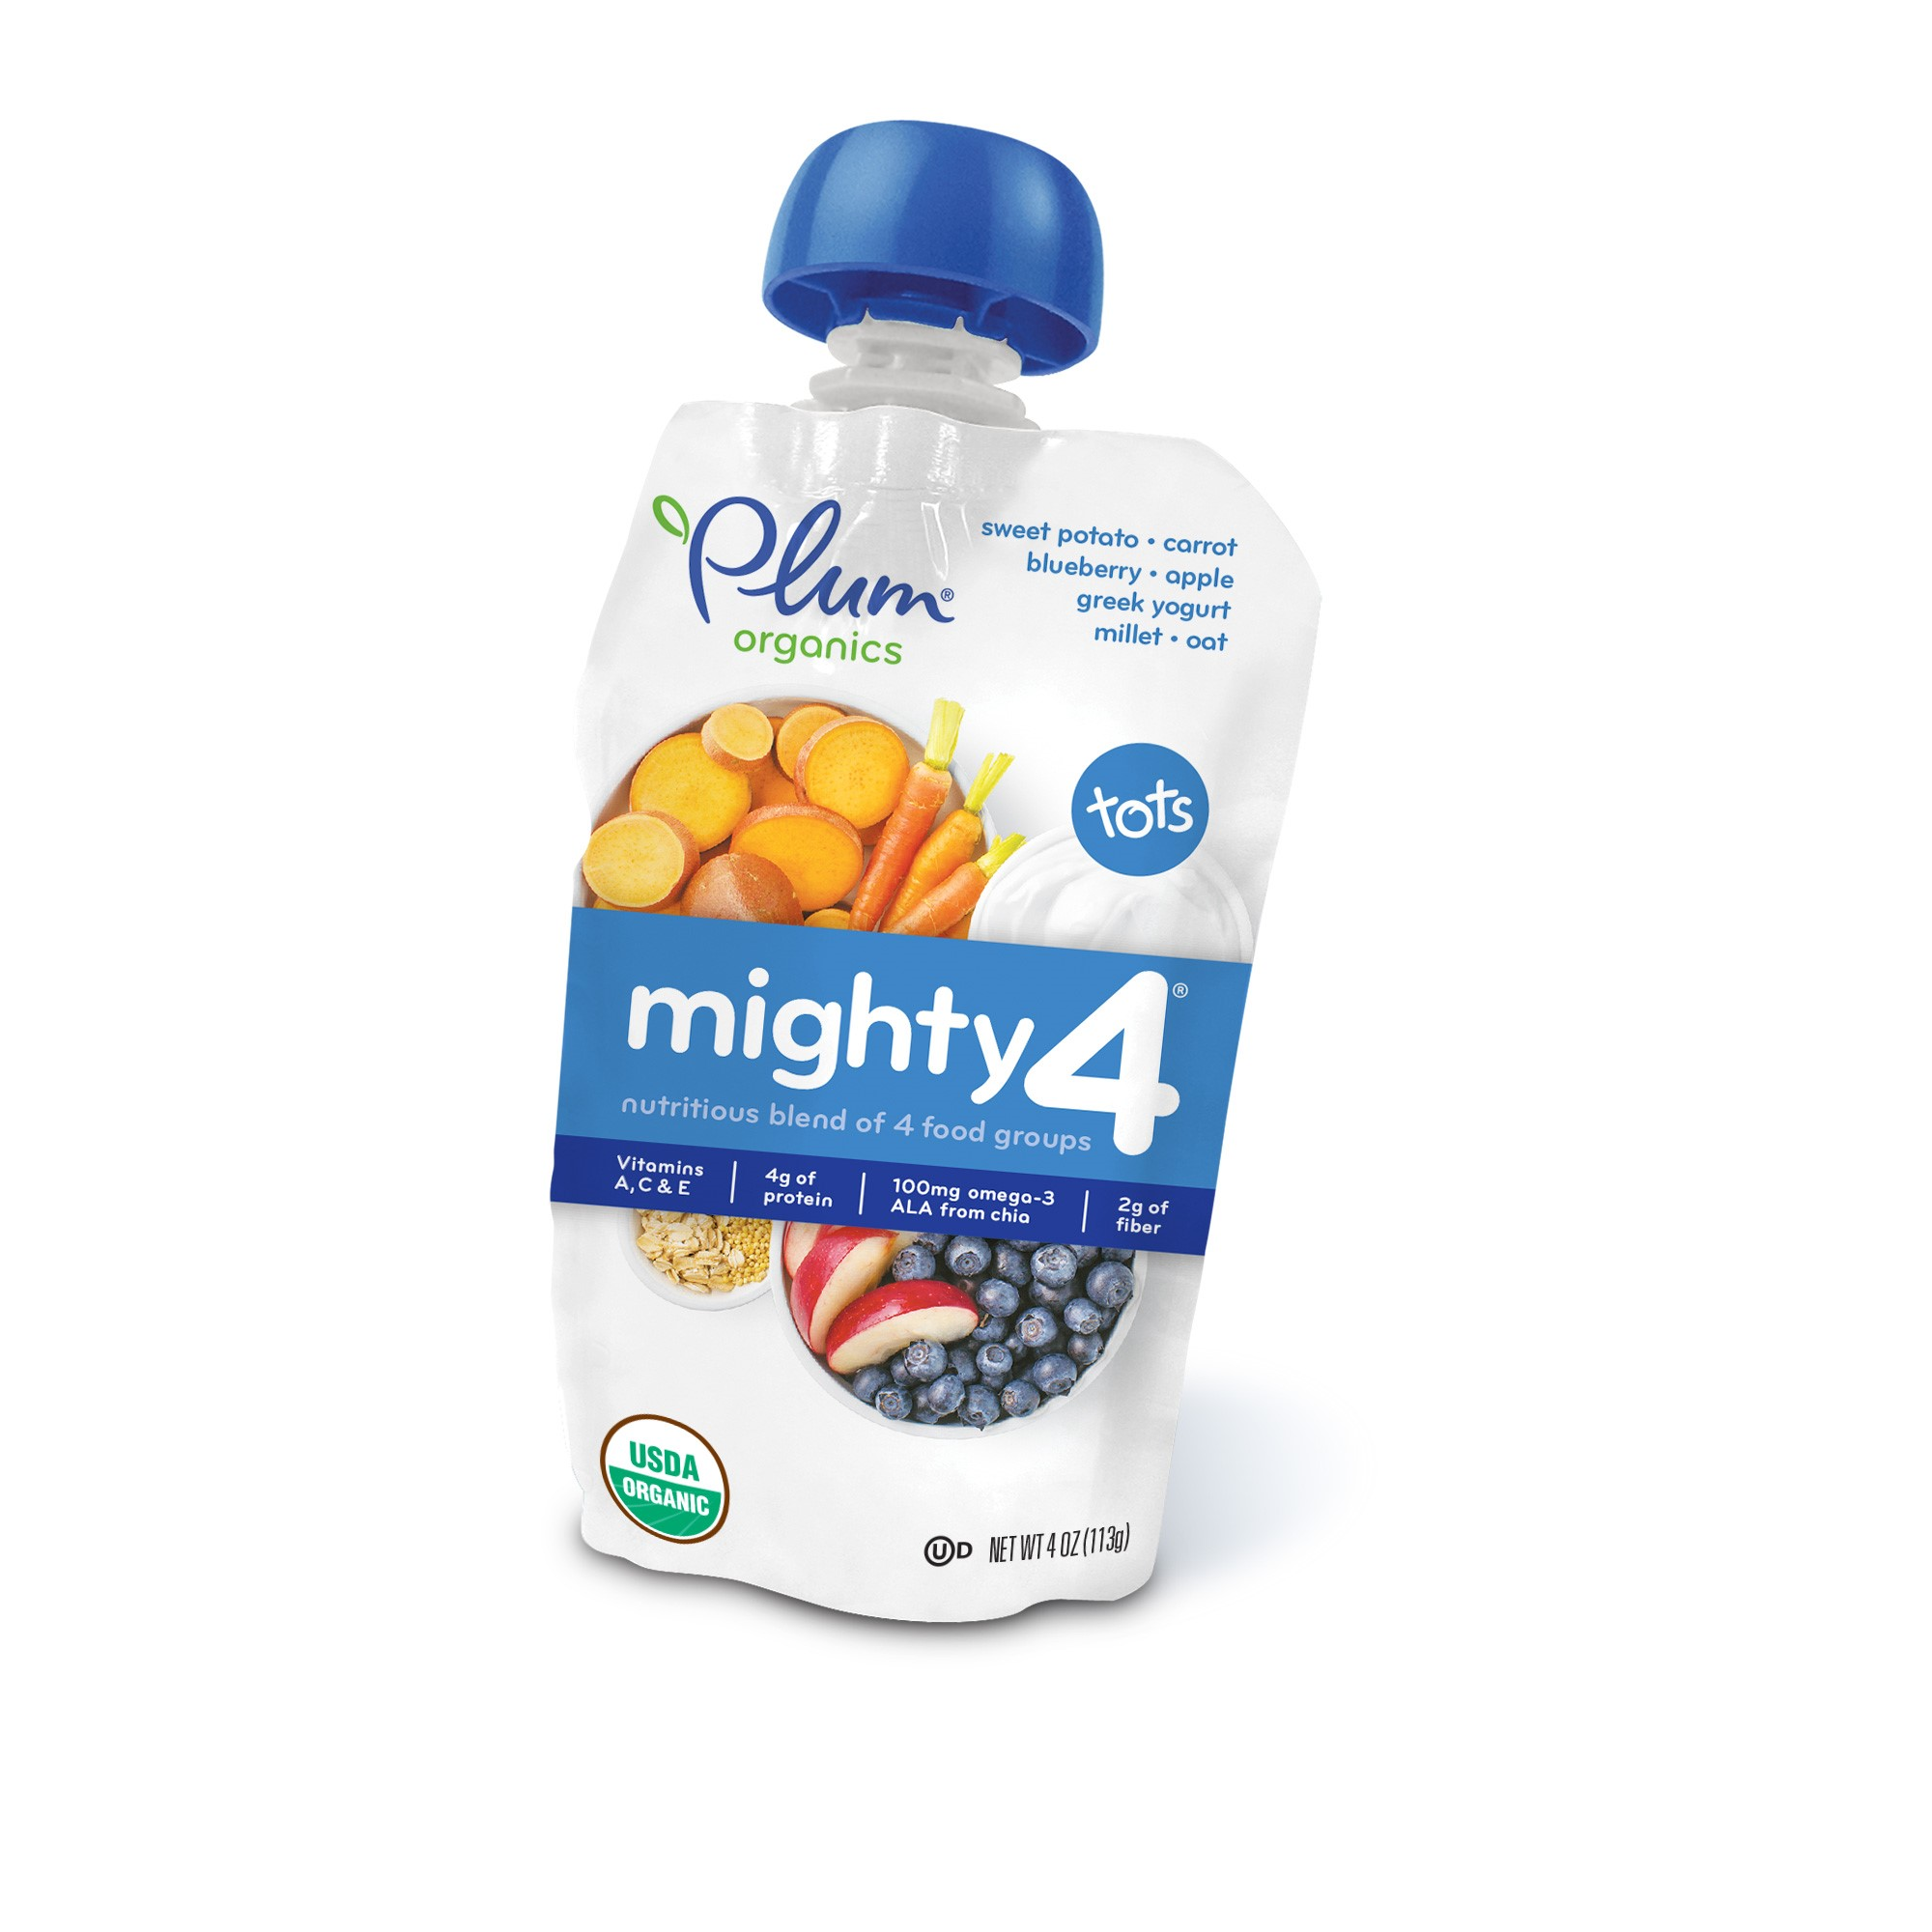 Plum Organics Tots Mighty 4 Sweet Potato, Blueberry, Millet & Greek Yogurt Essential Nutrition Blend, 4 oz, (Pack of 6)